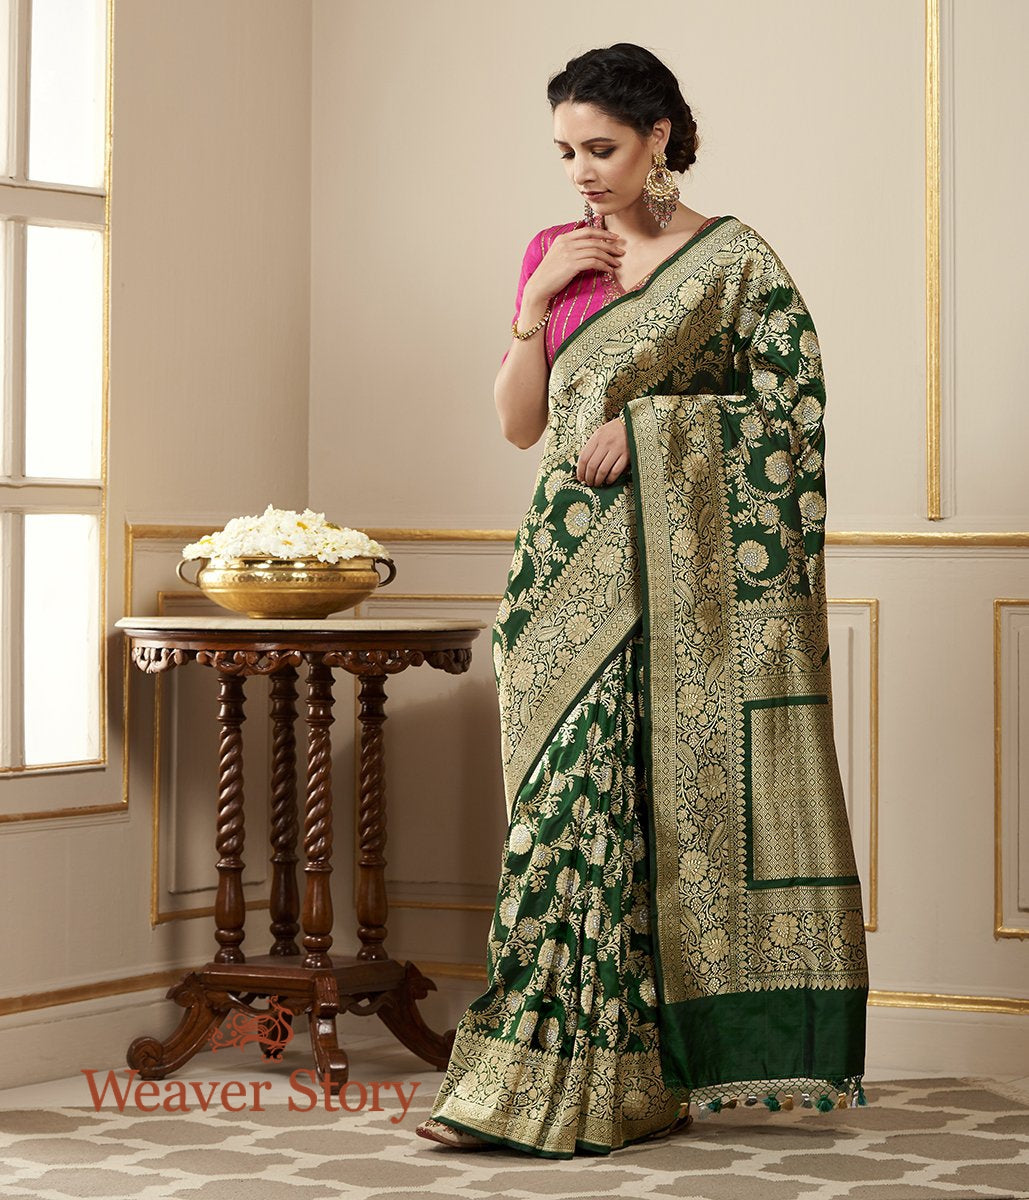 Handwoven Bottle Green Kadhwa Jangla Saree